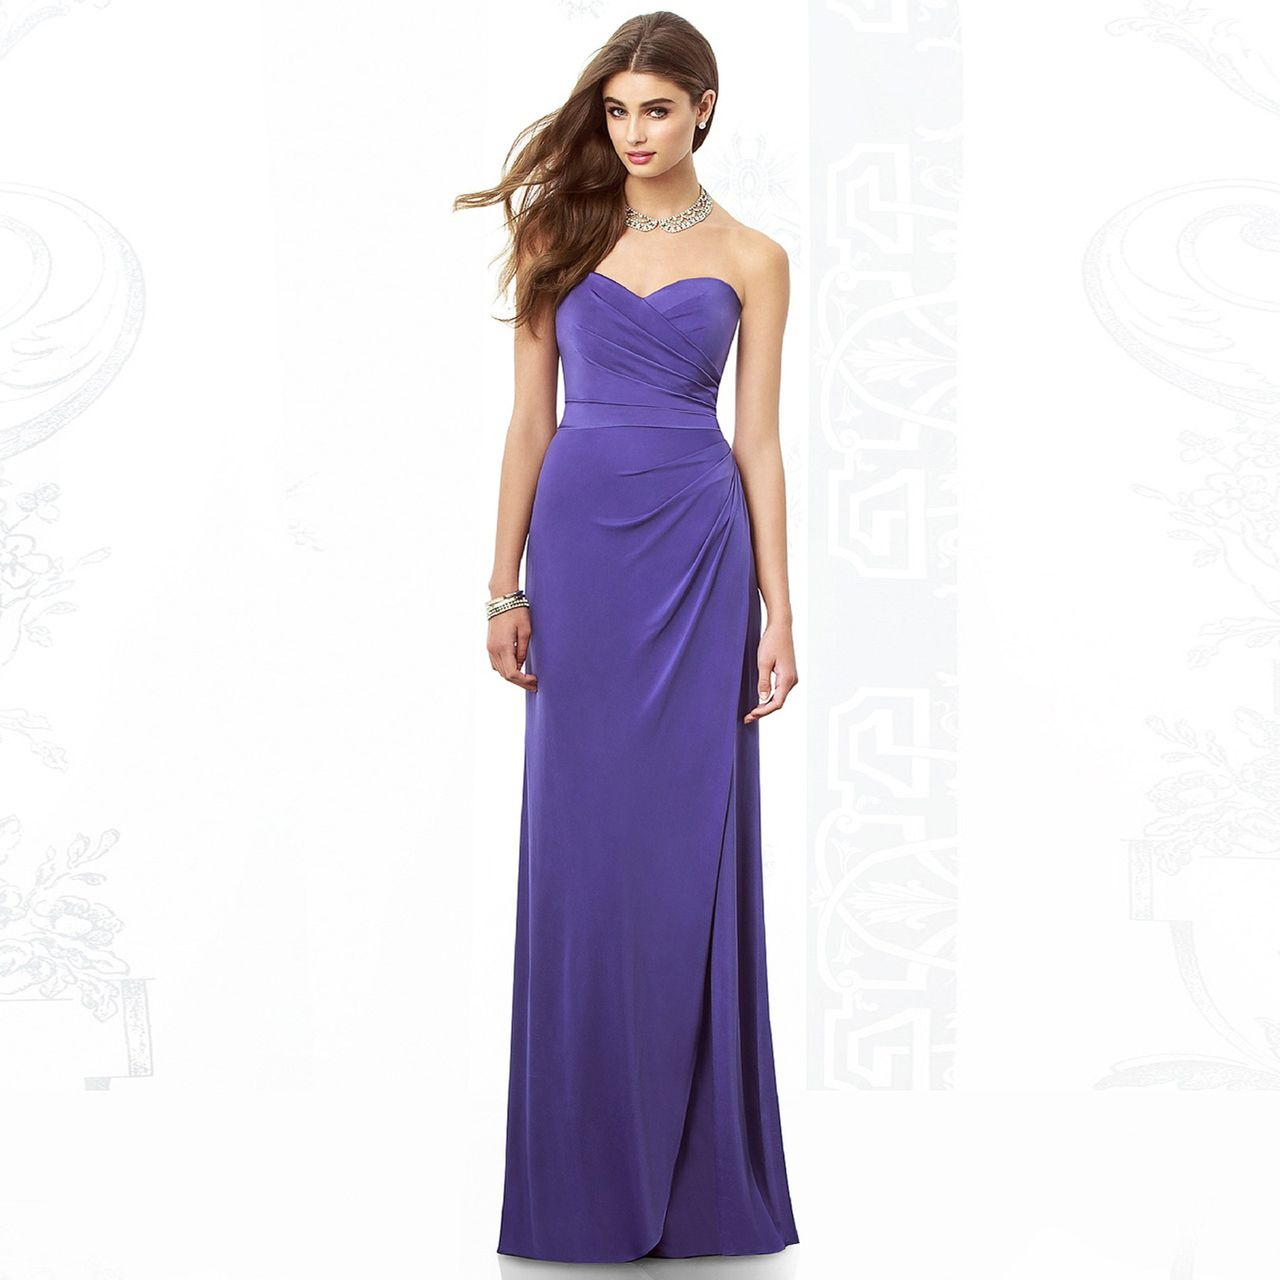 Fashionably Yours - DOMINIQUE Bridesmaid Dress By After Six From ...